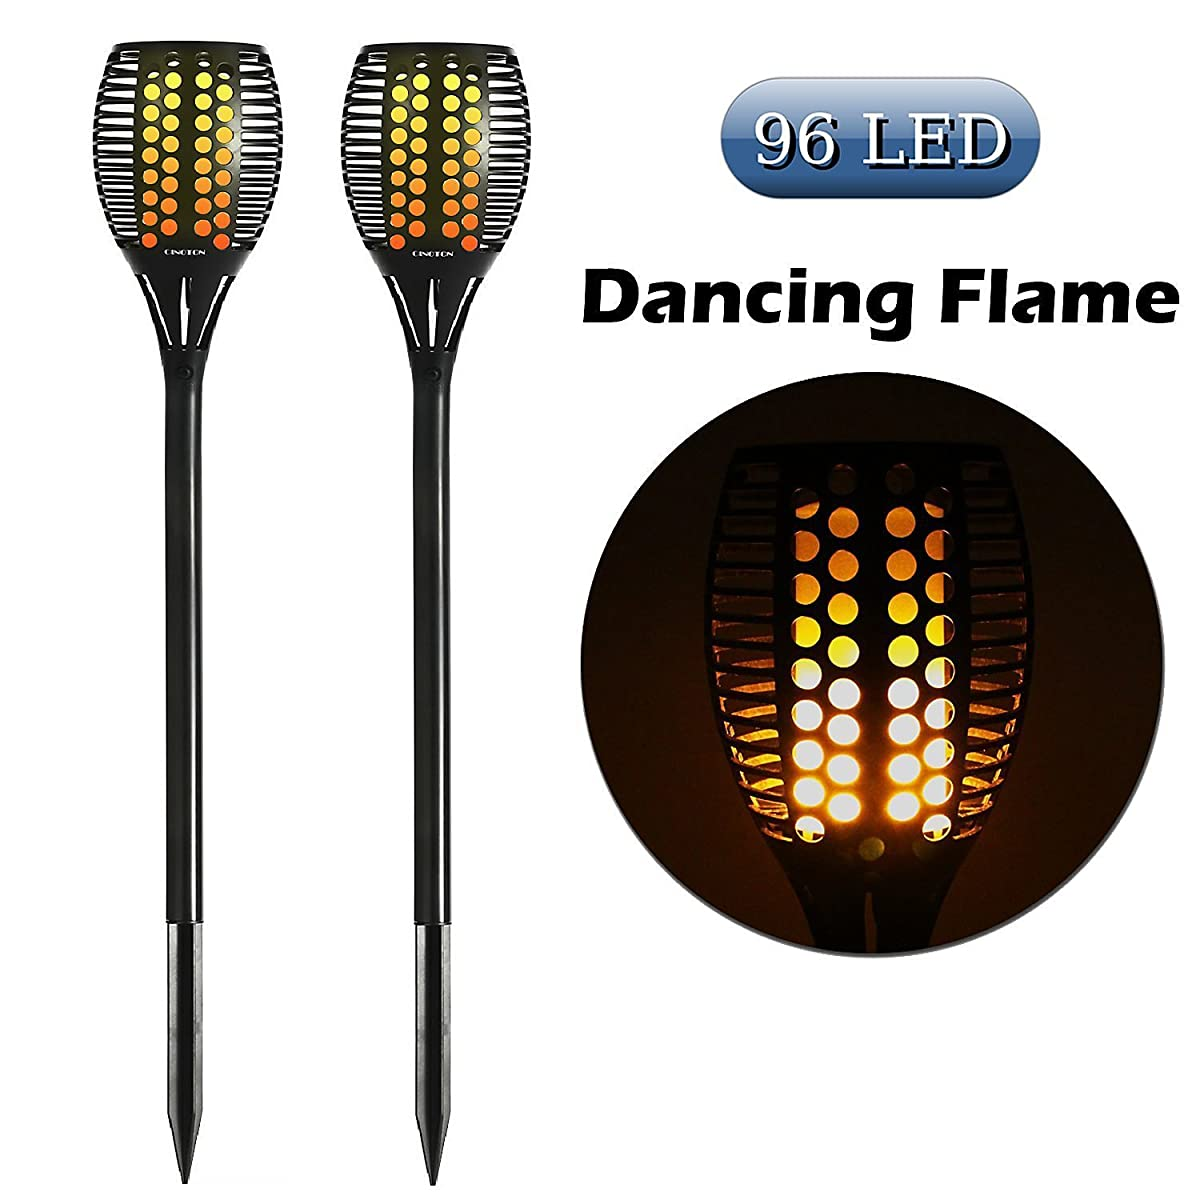 Cinoton Solar Light Path Torches Dancing Flame Lighting 96